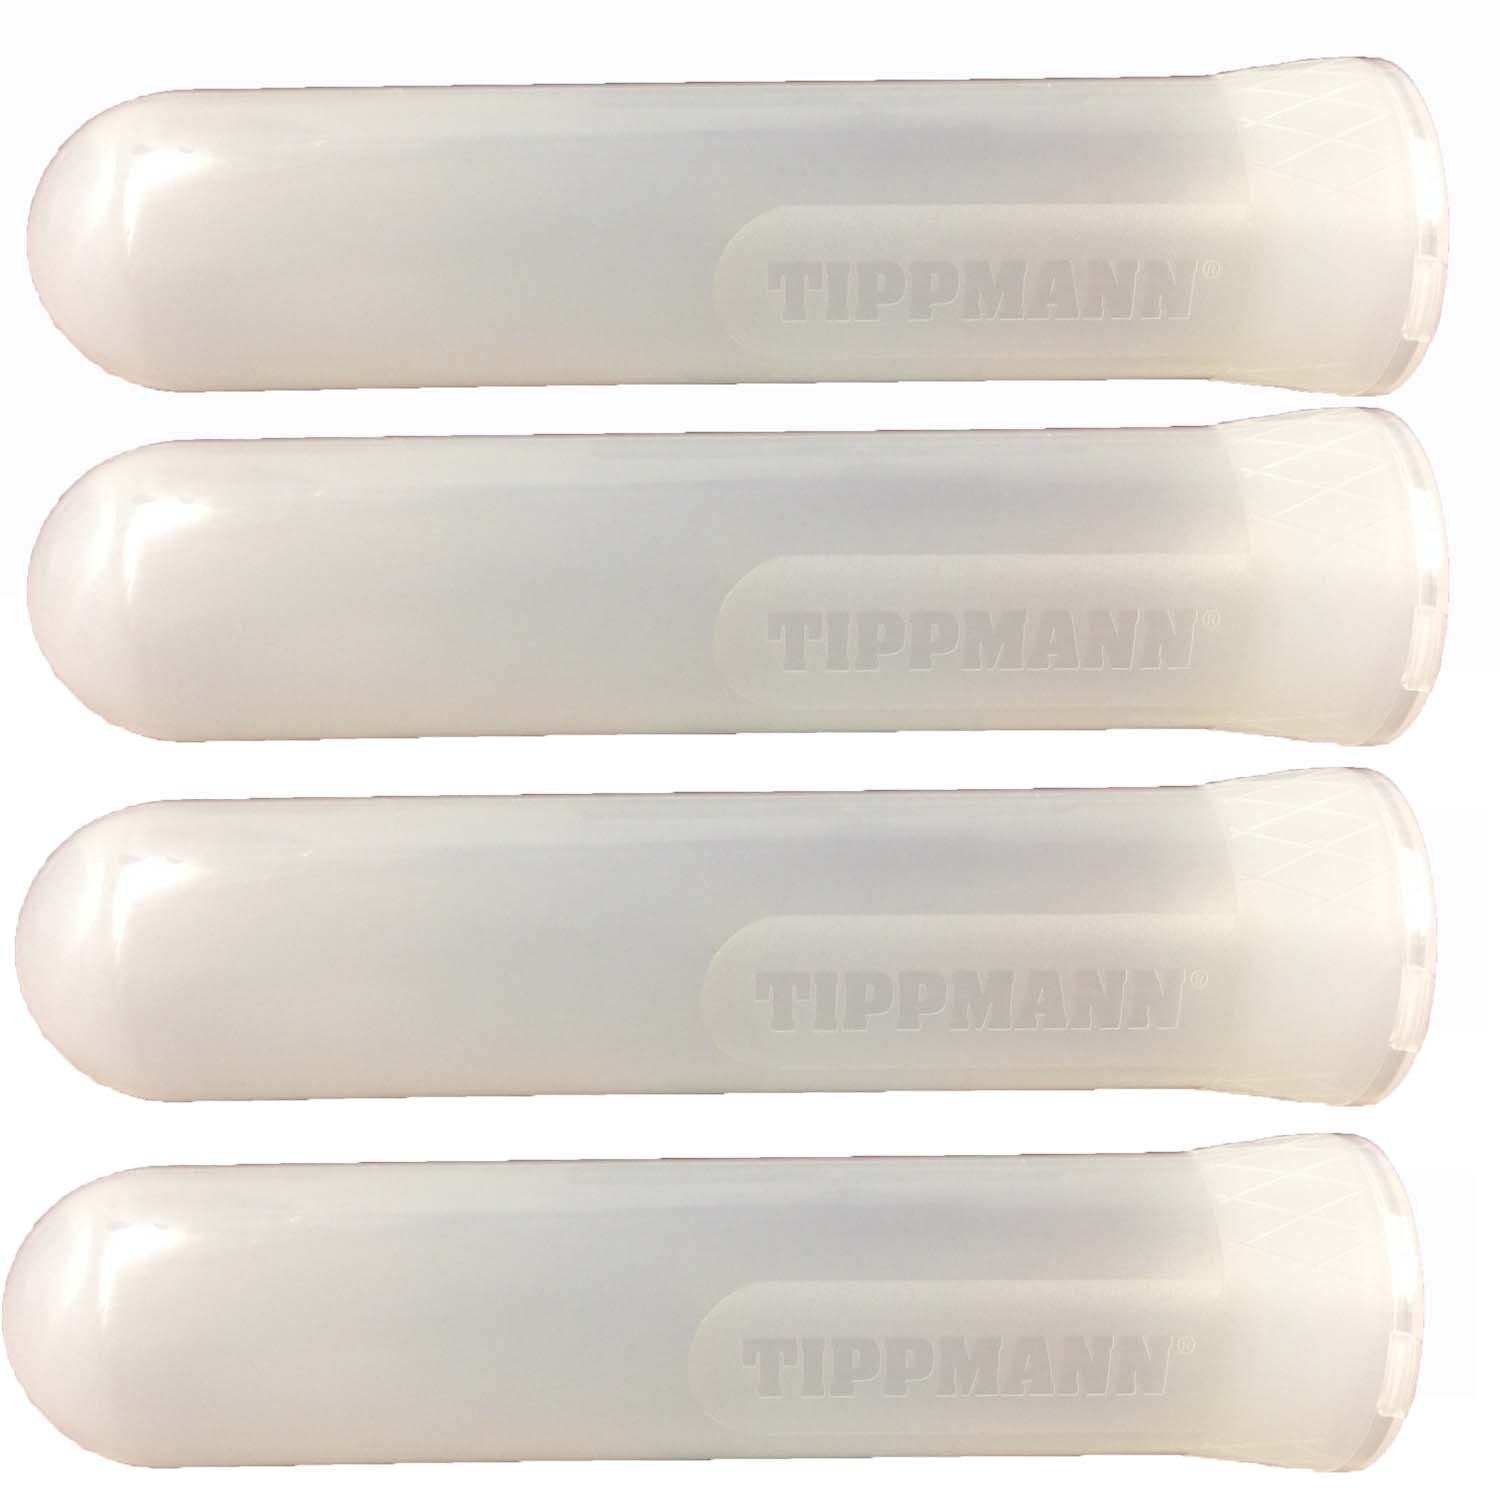 Tippmann Paintball Heavy Duty 140 Round Guppy Pods, Clear, Pack of 4 by Tippmann